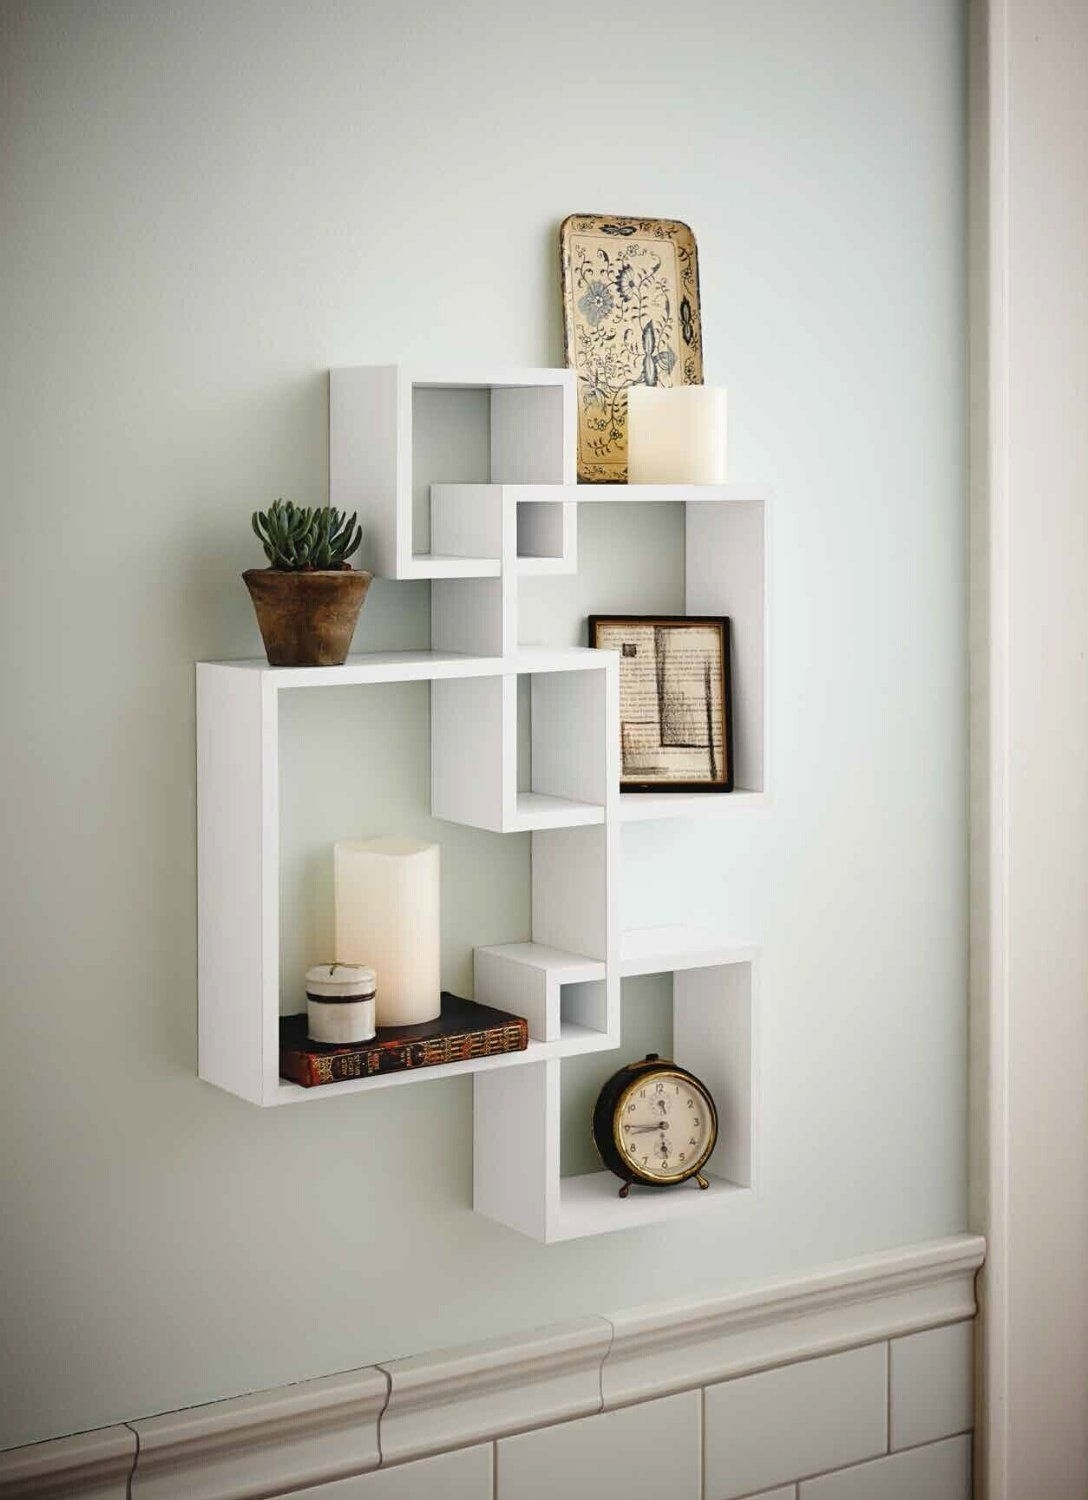 Amazon – Generic Intersecting Squares Wall Shelf – Decorative In Recent Amazon Wall Accents (View 7 of 15)